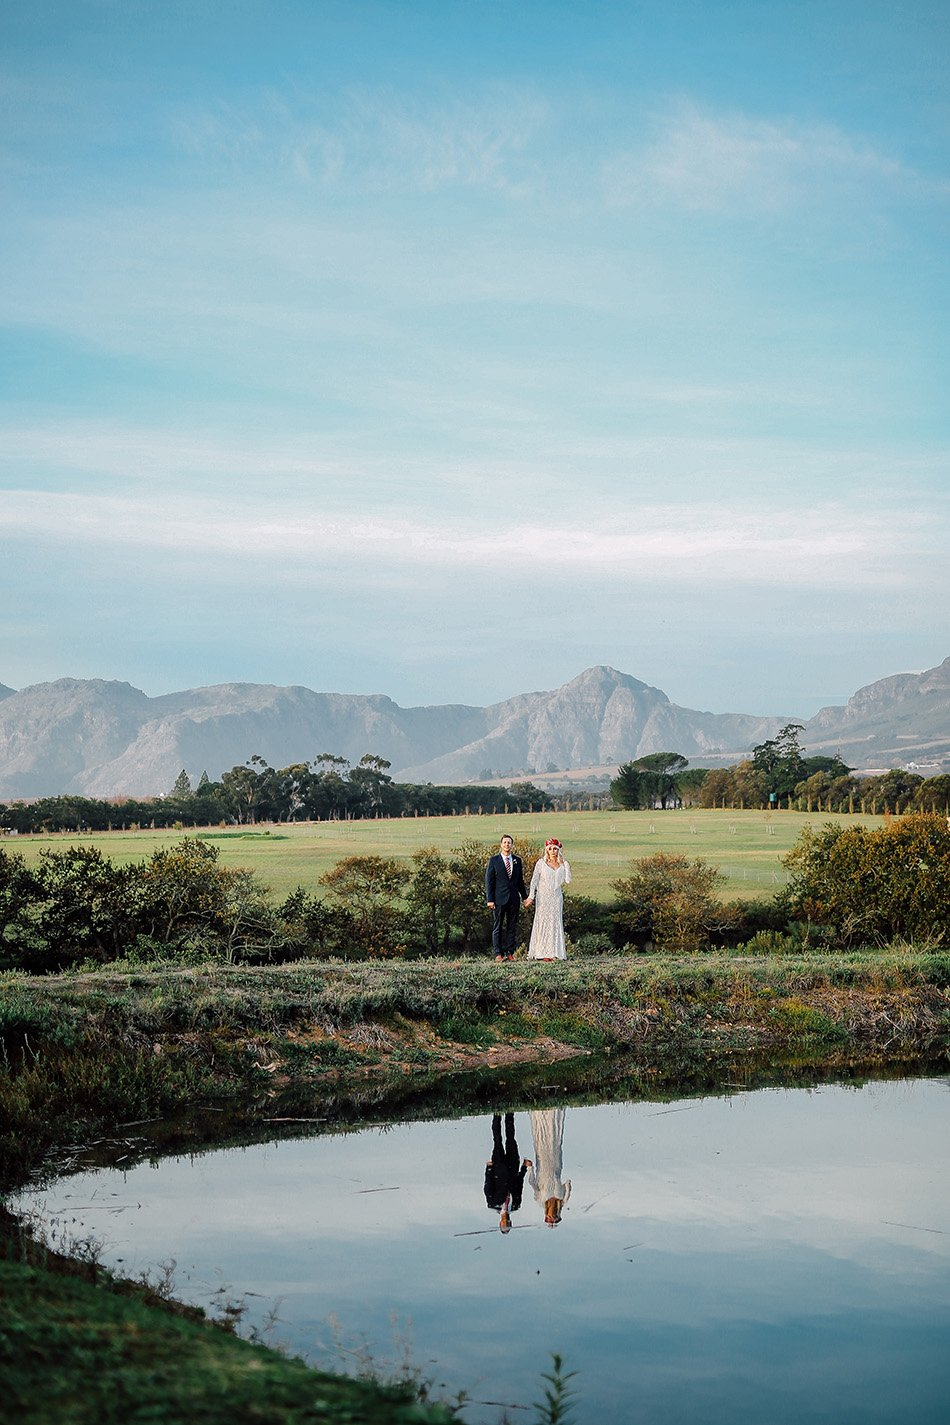 Nadia&Charl {Married@Winery Road Forest, R44}-2055